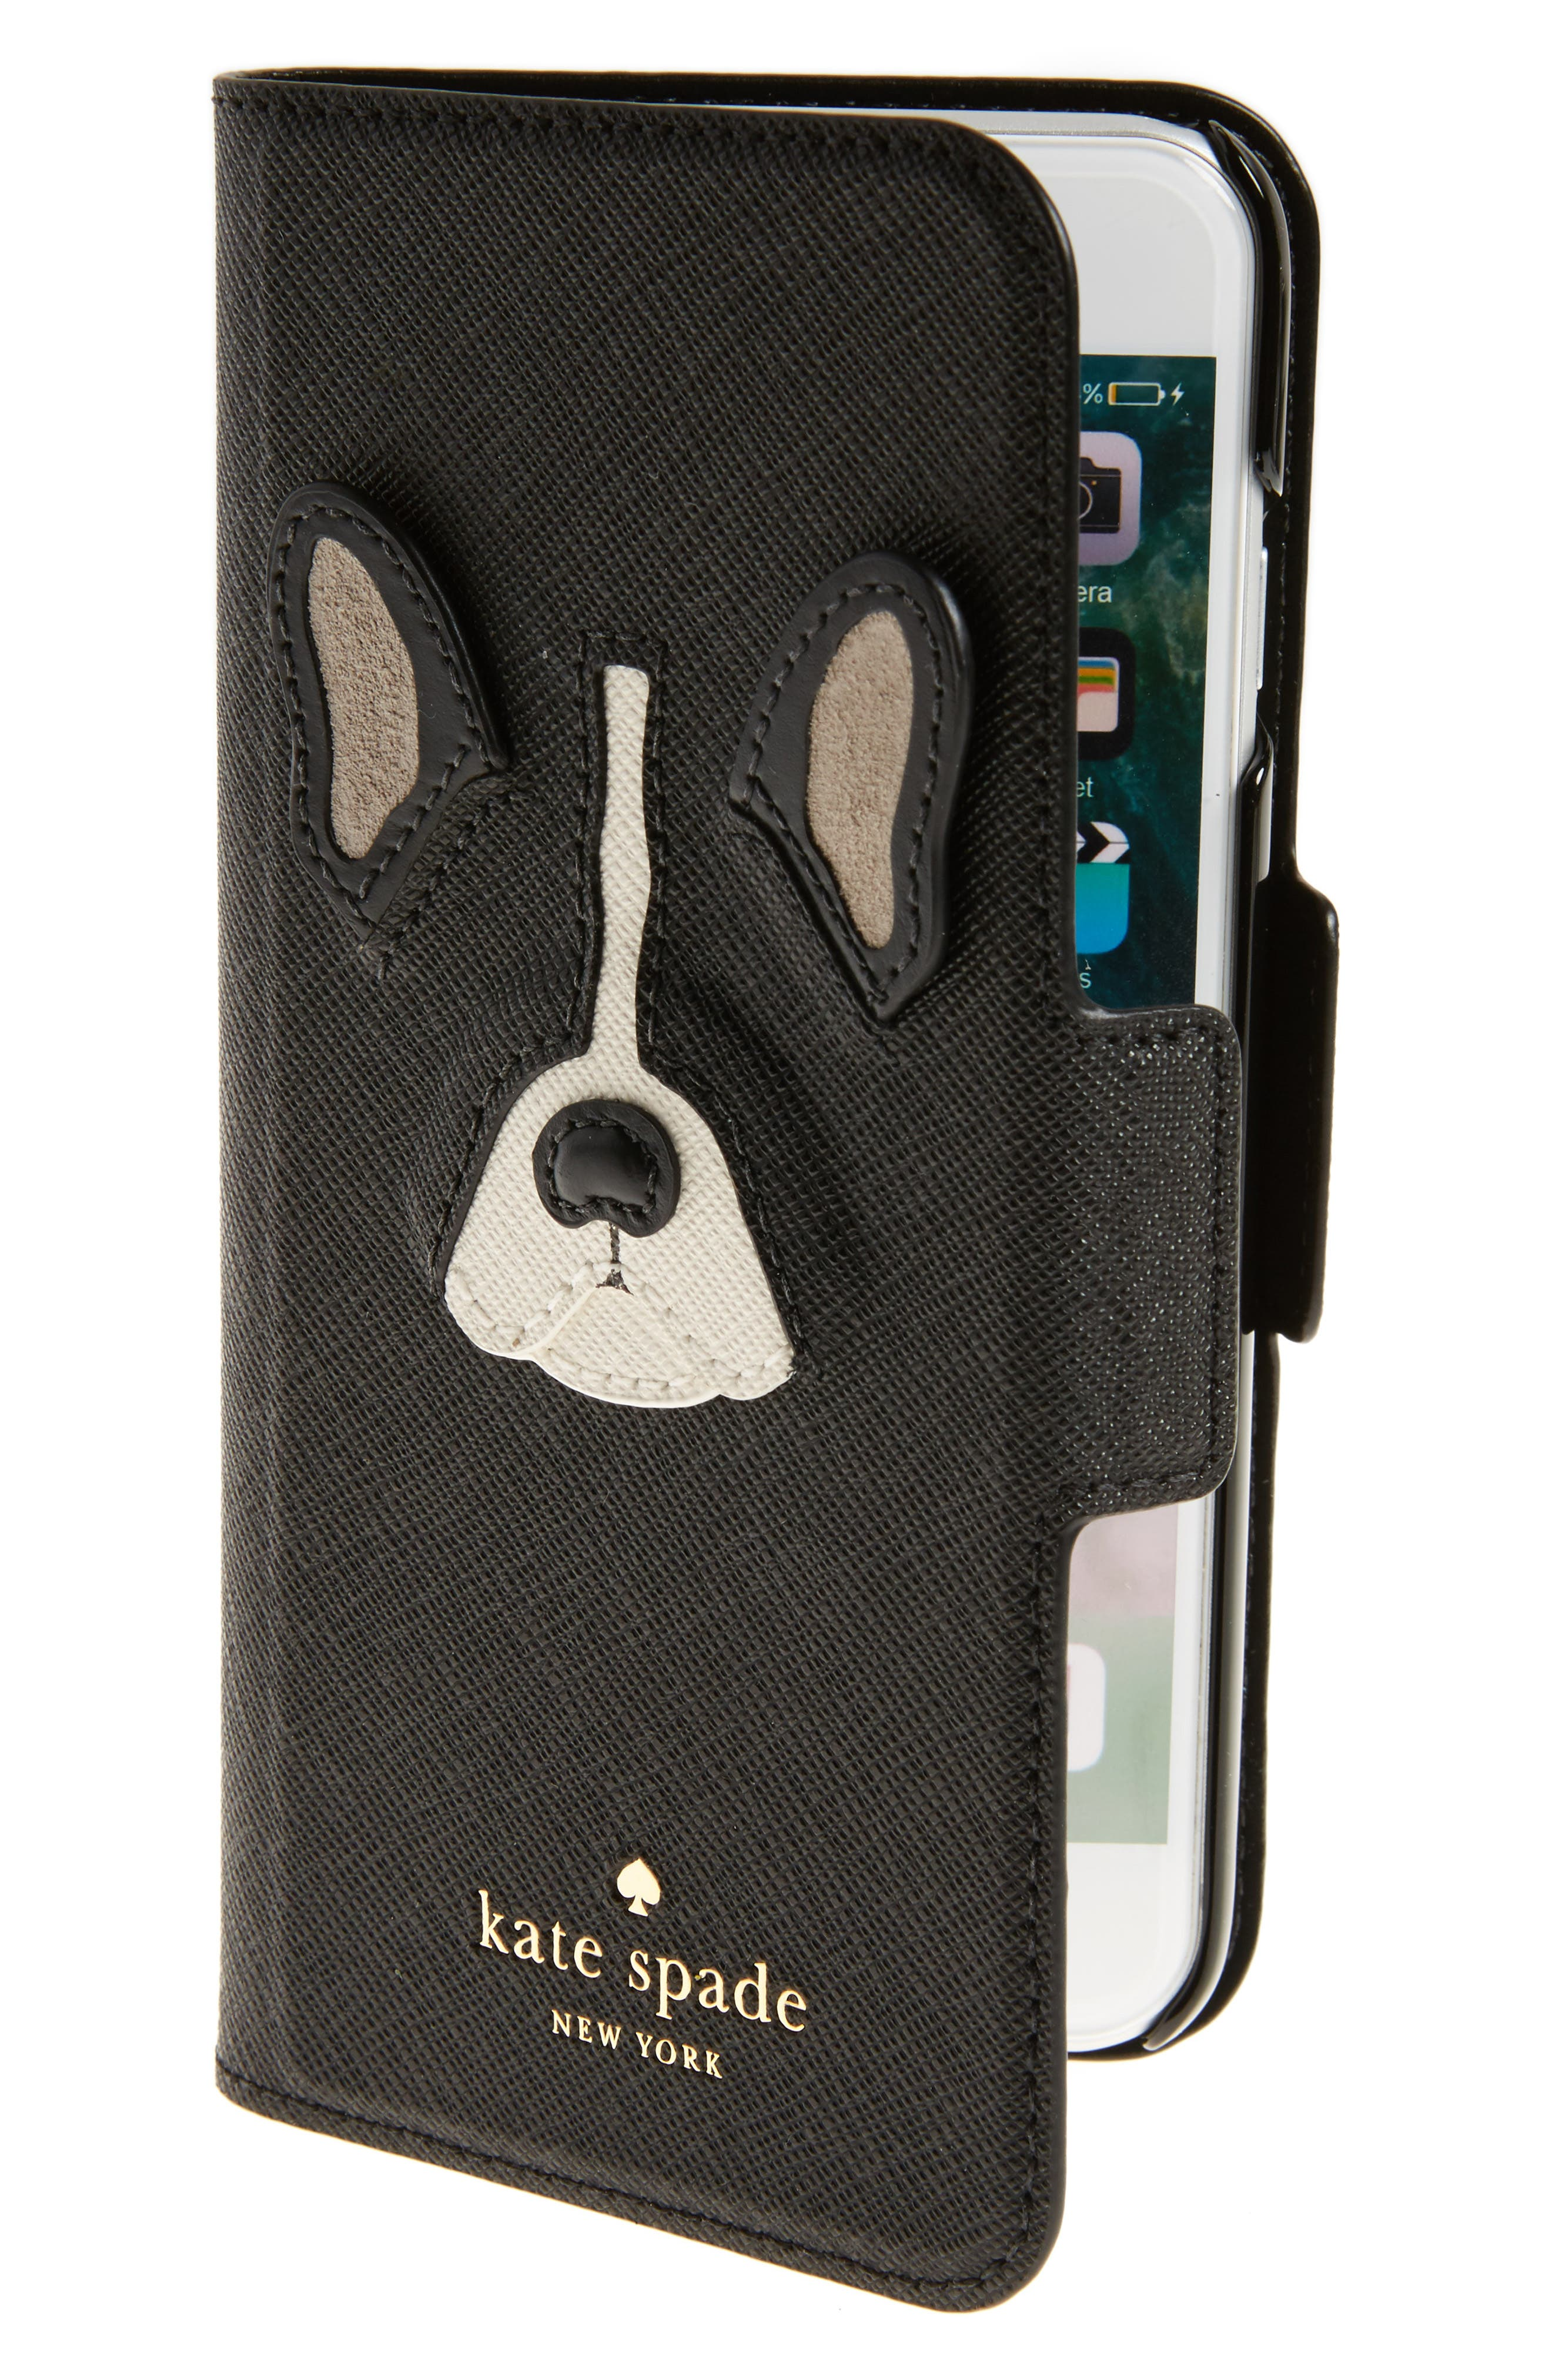 kate spade new york antoine appliqué leather iPhone 7 folio case